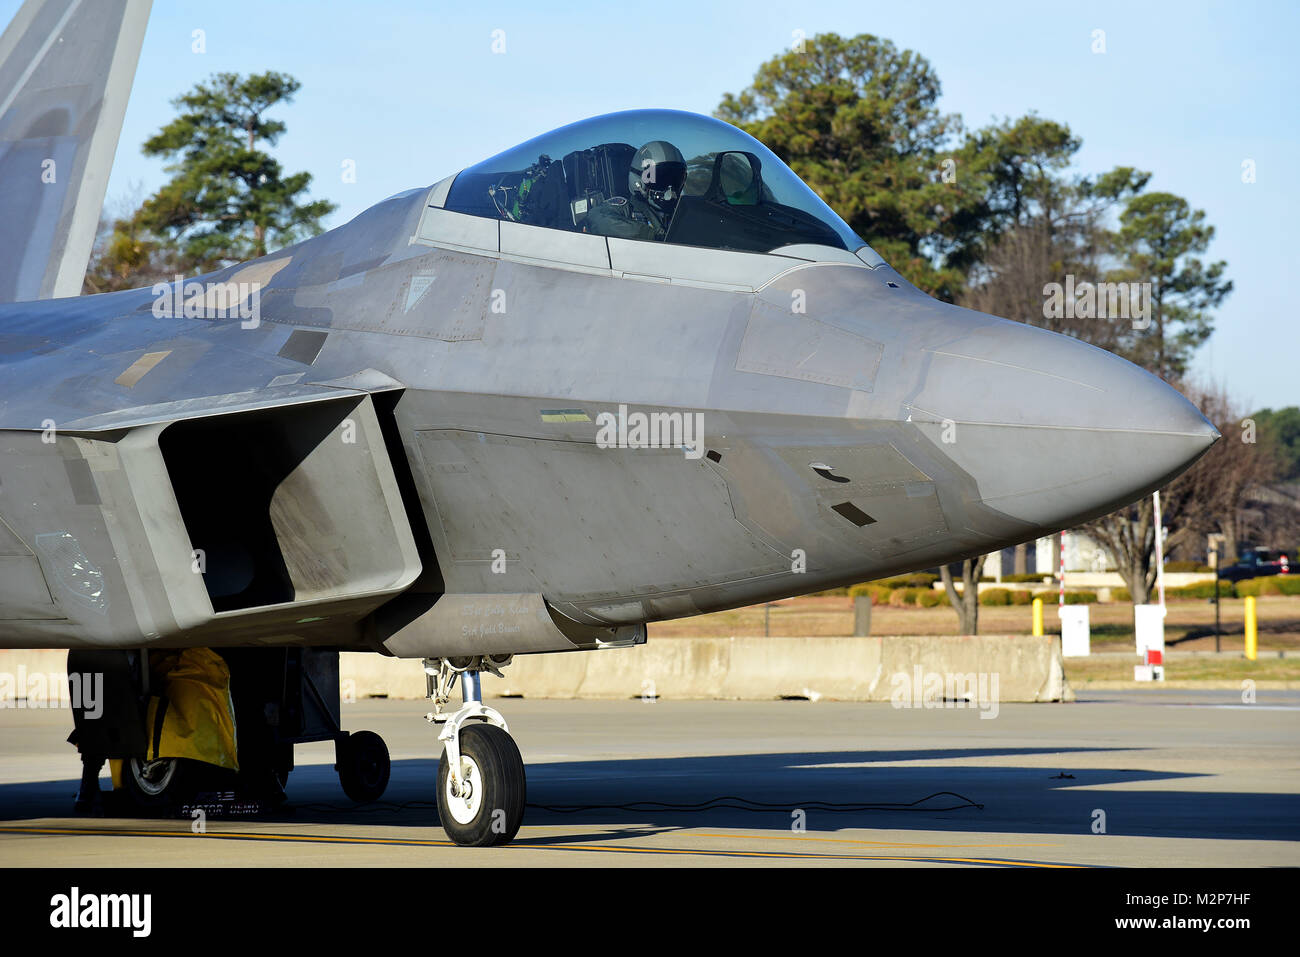 An F-22 Raptor from the Air Combat Command F-22